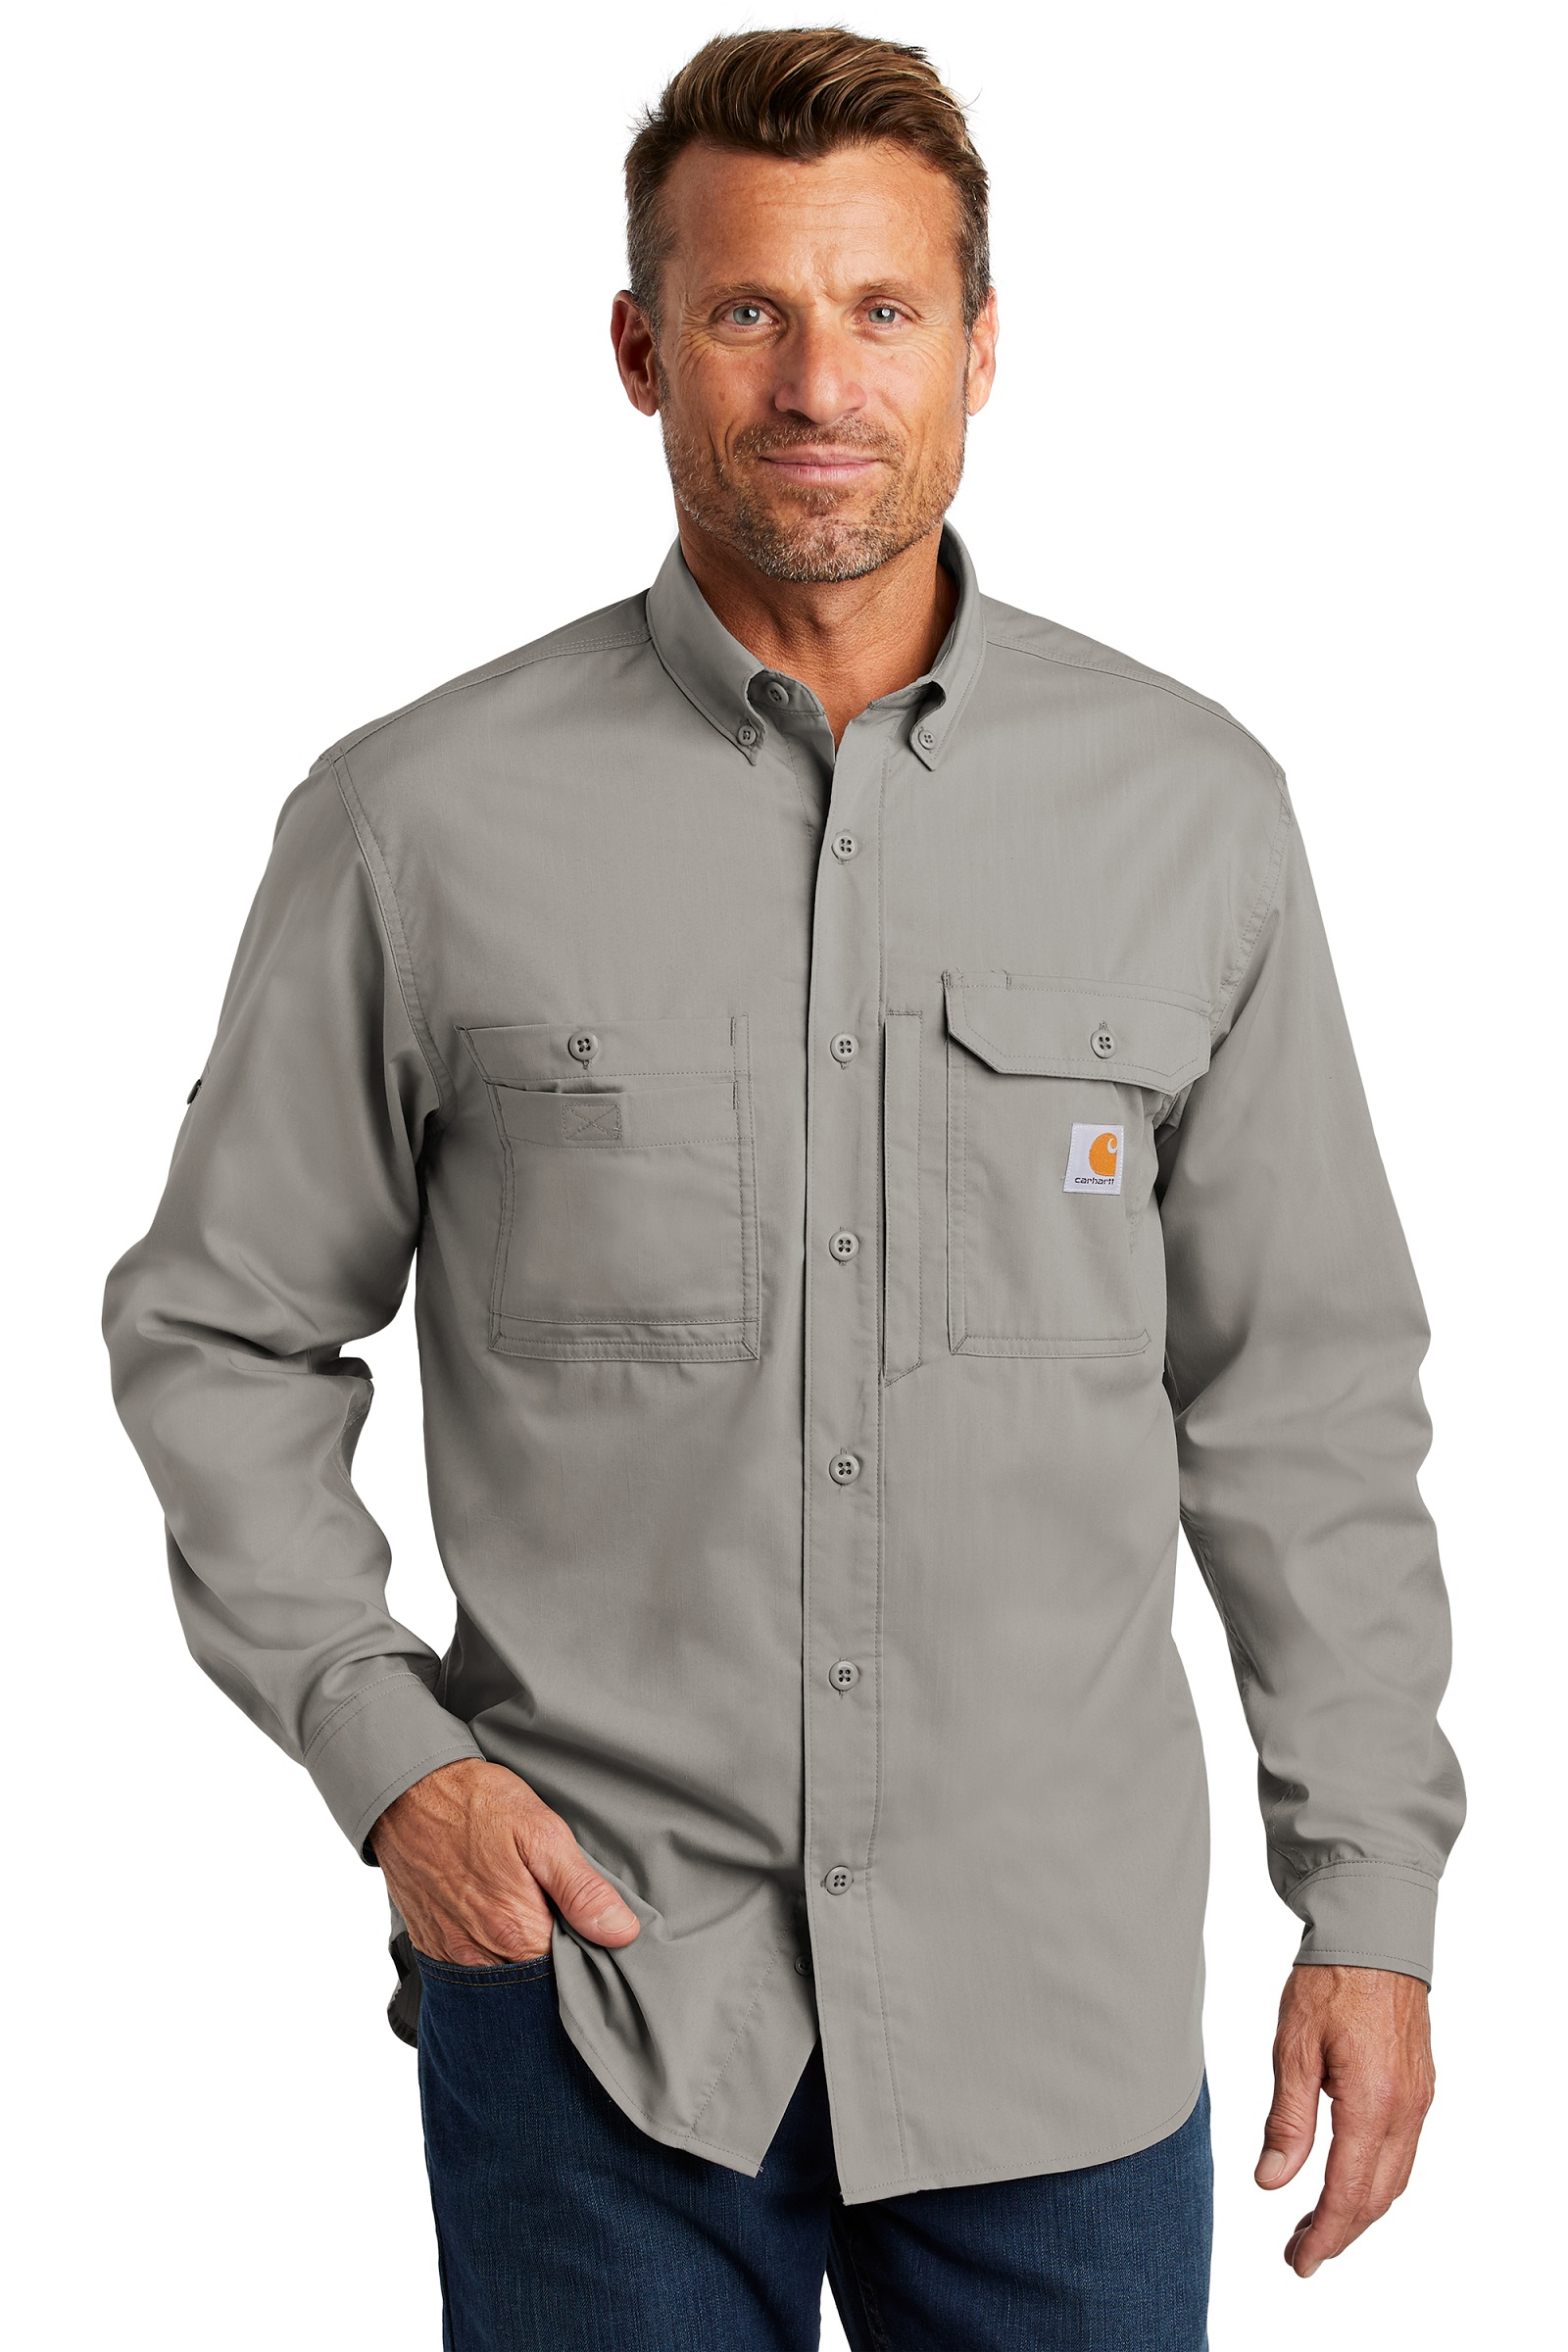 473b2d52 Carhartt Force Embroidered Ridgefield Solid Long Sleeve Shirt ...